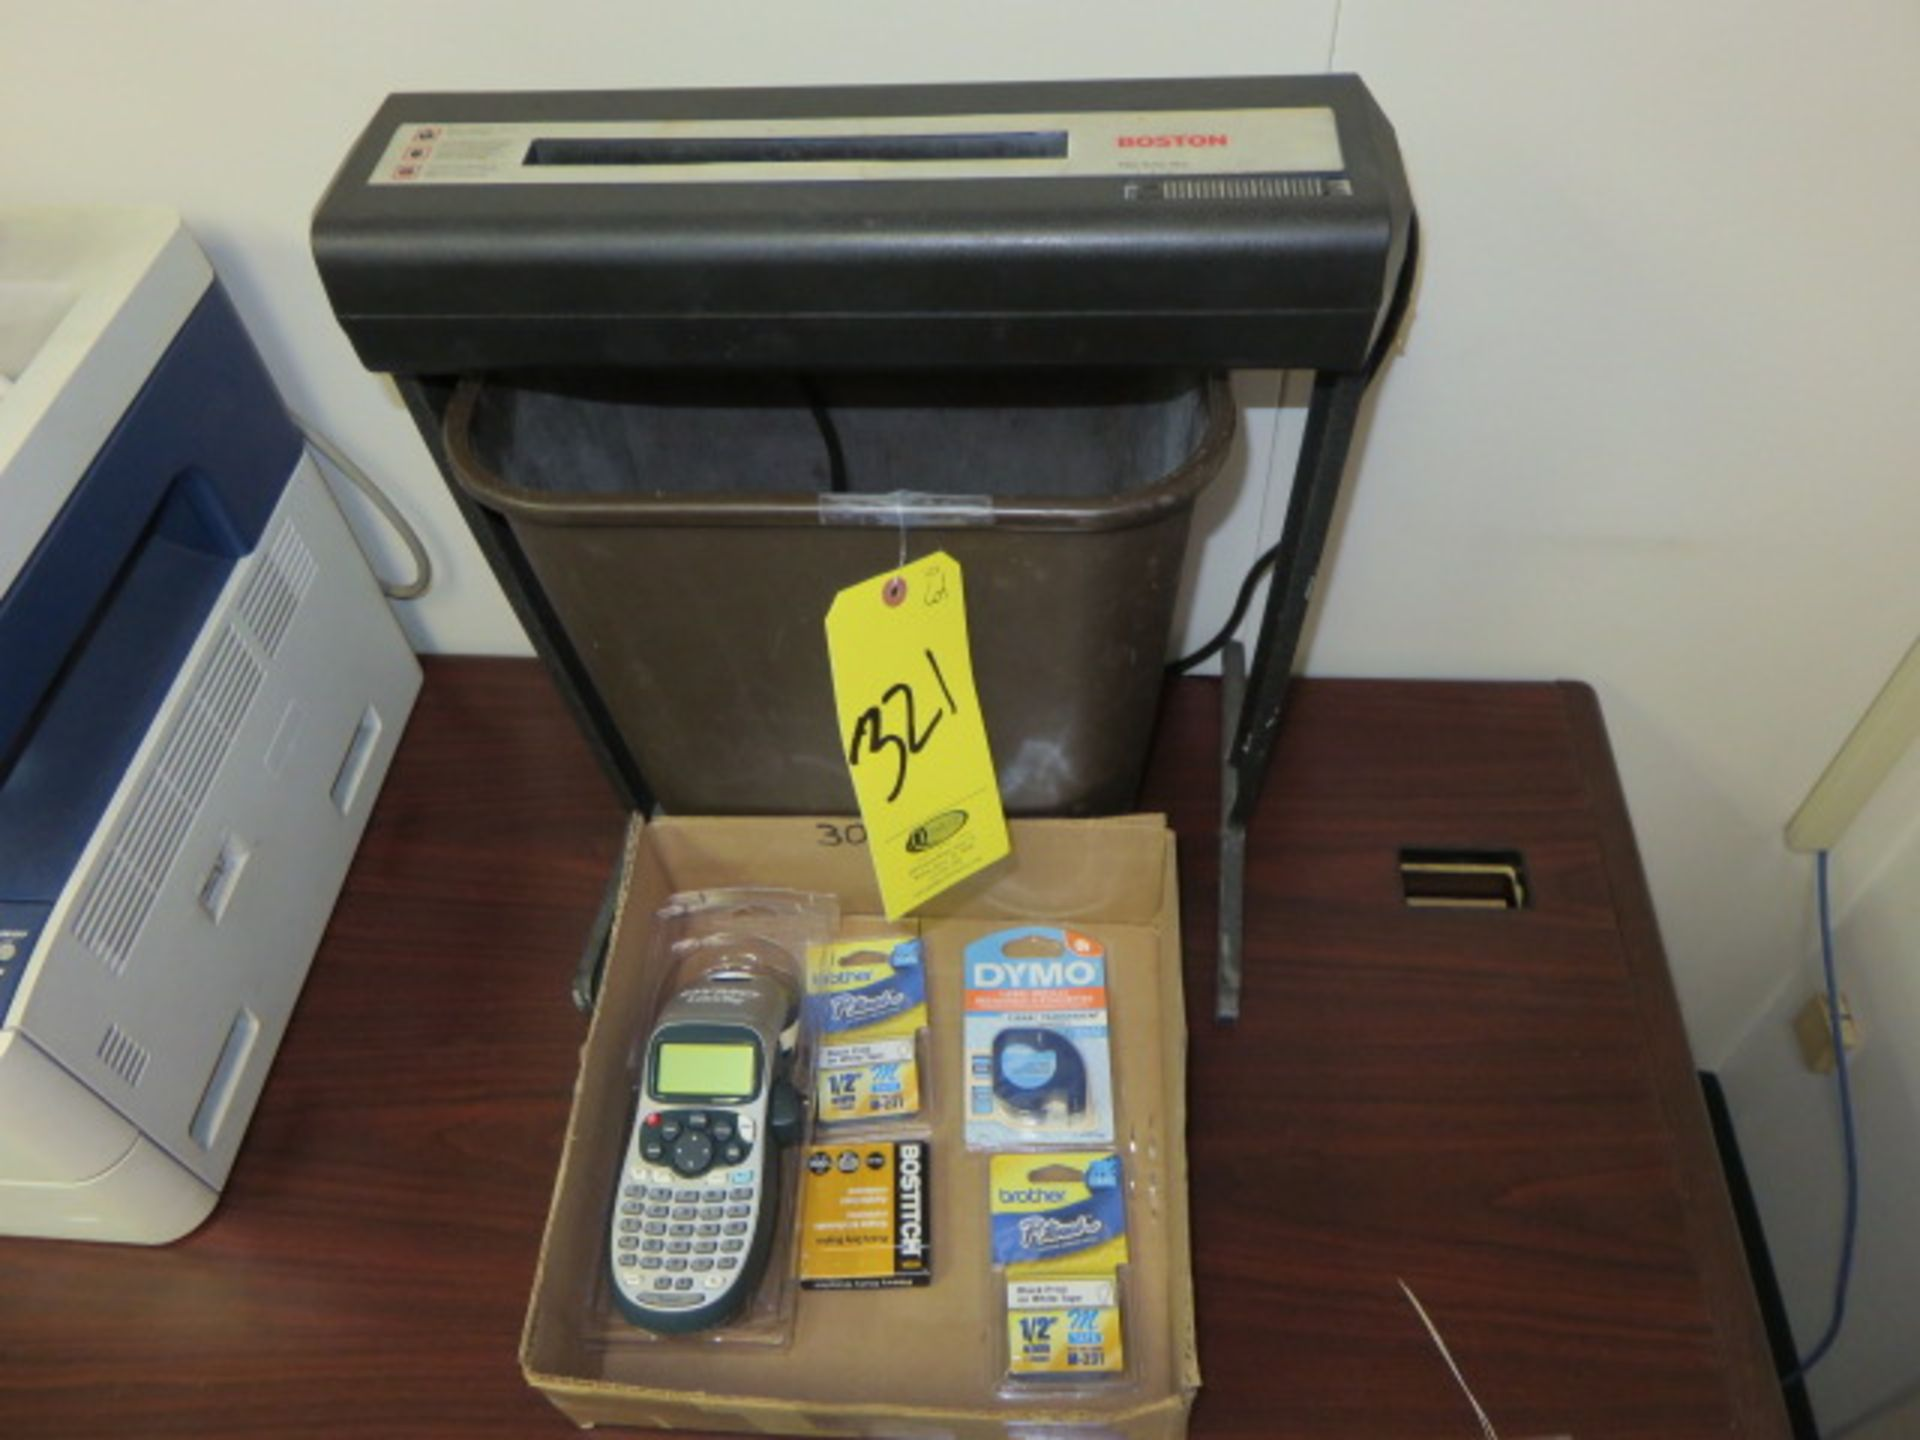 BOSTON SHREDDER, DYMO LABELER AND PAPER CUTTER